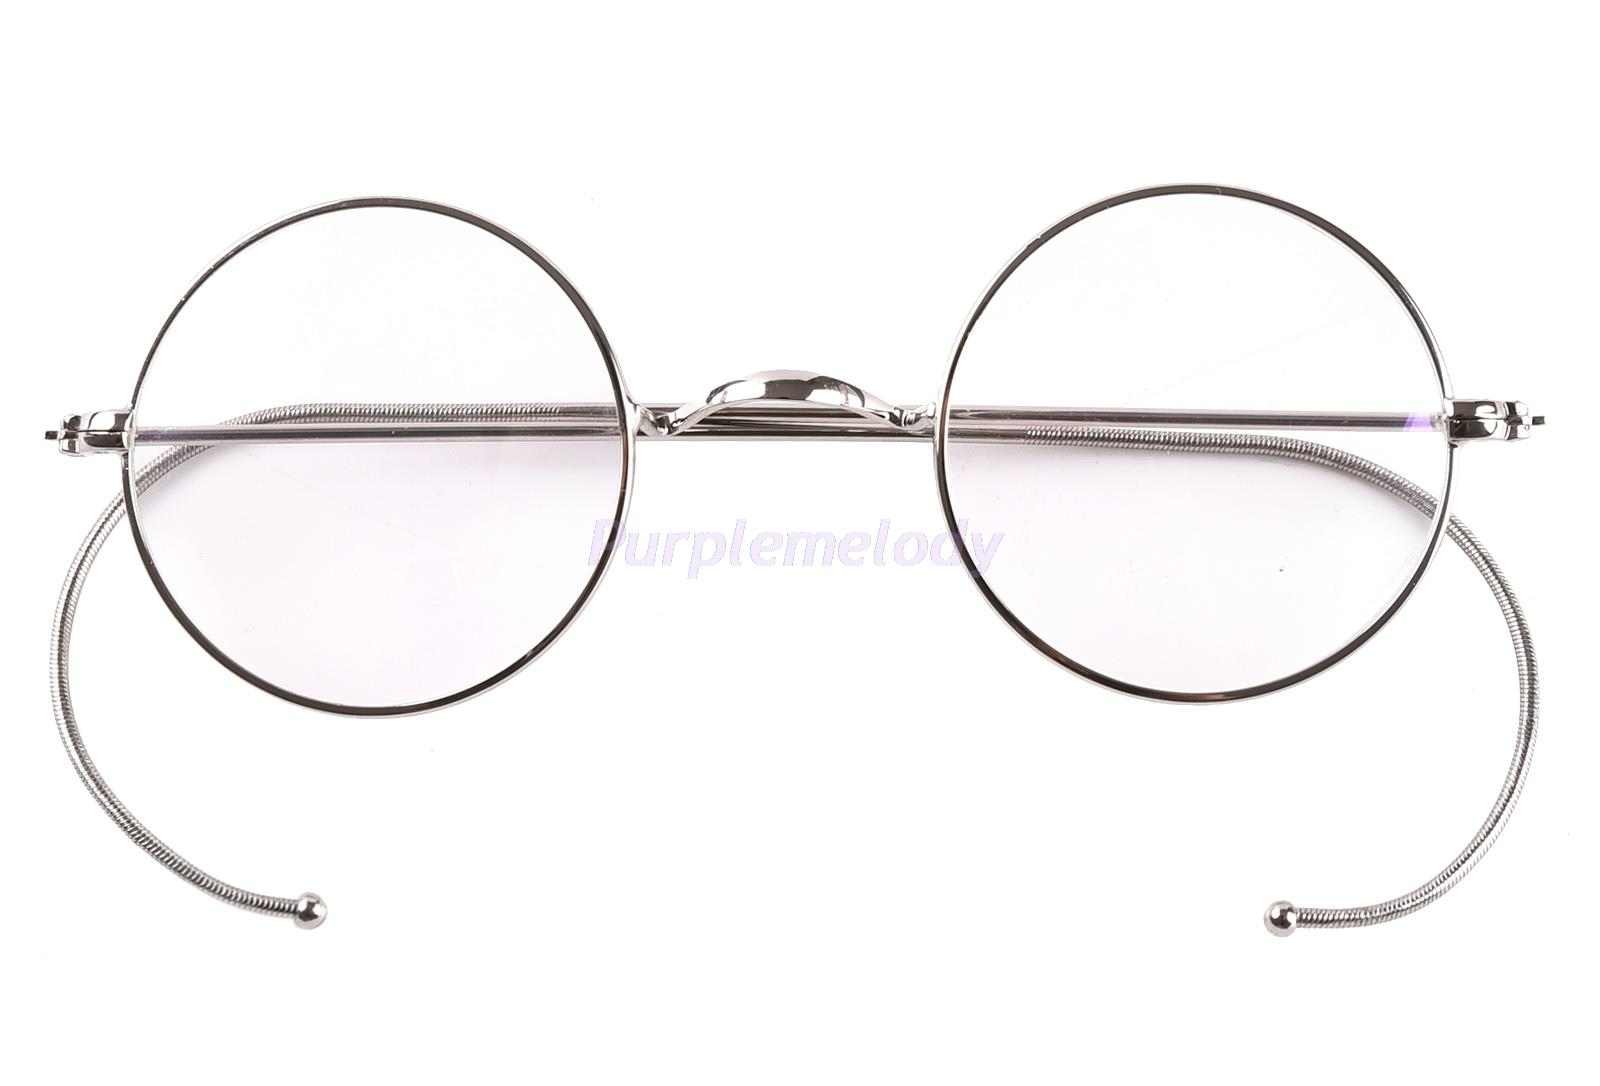 7db859c0e2a 39mm Small Round Optical Rare Wire Rim Prescription Eyeglasses Frame  Antique Kids Children s